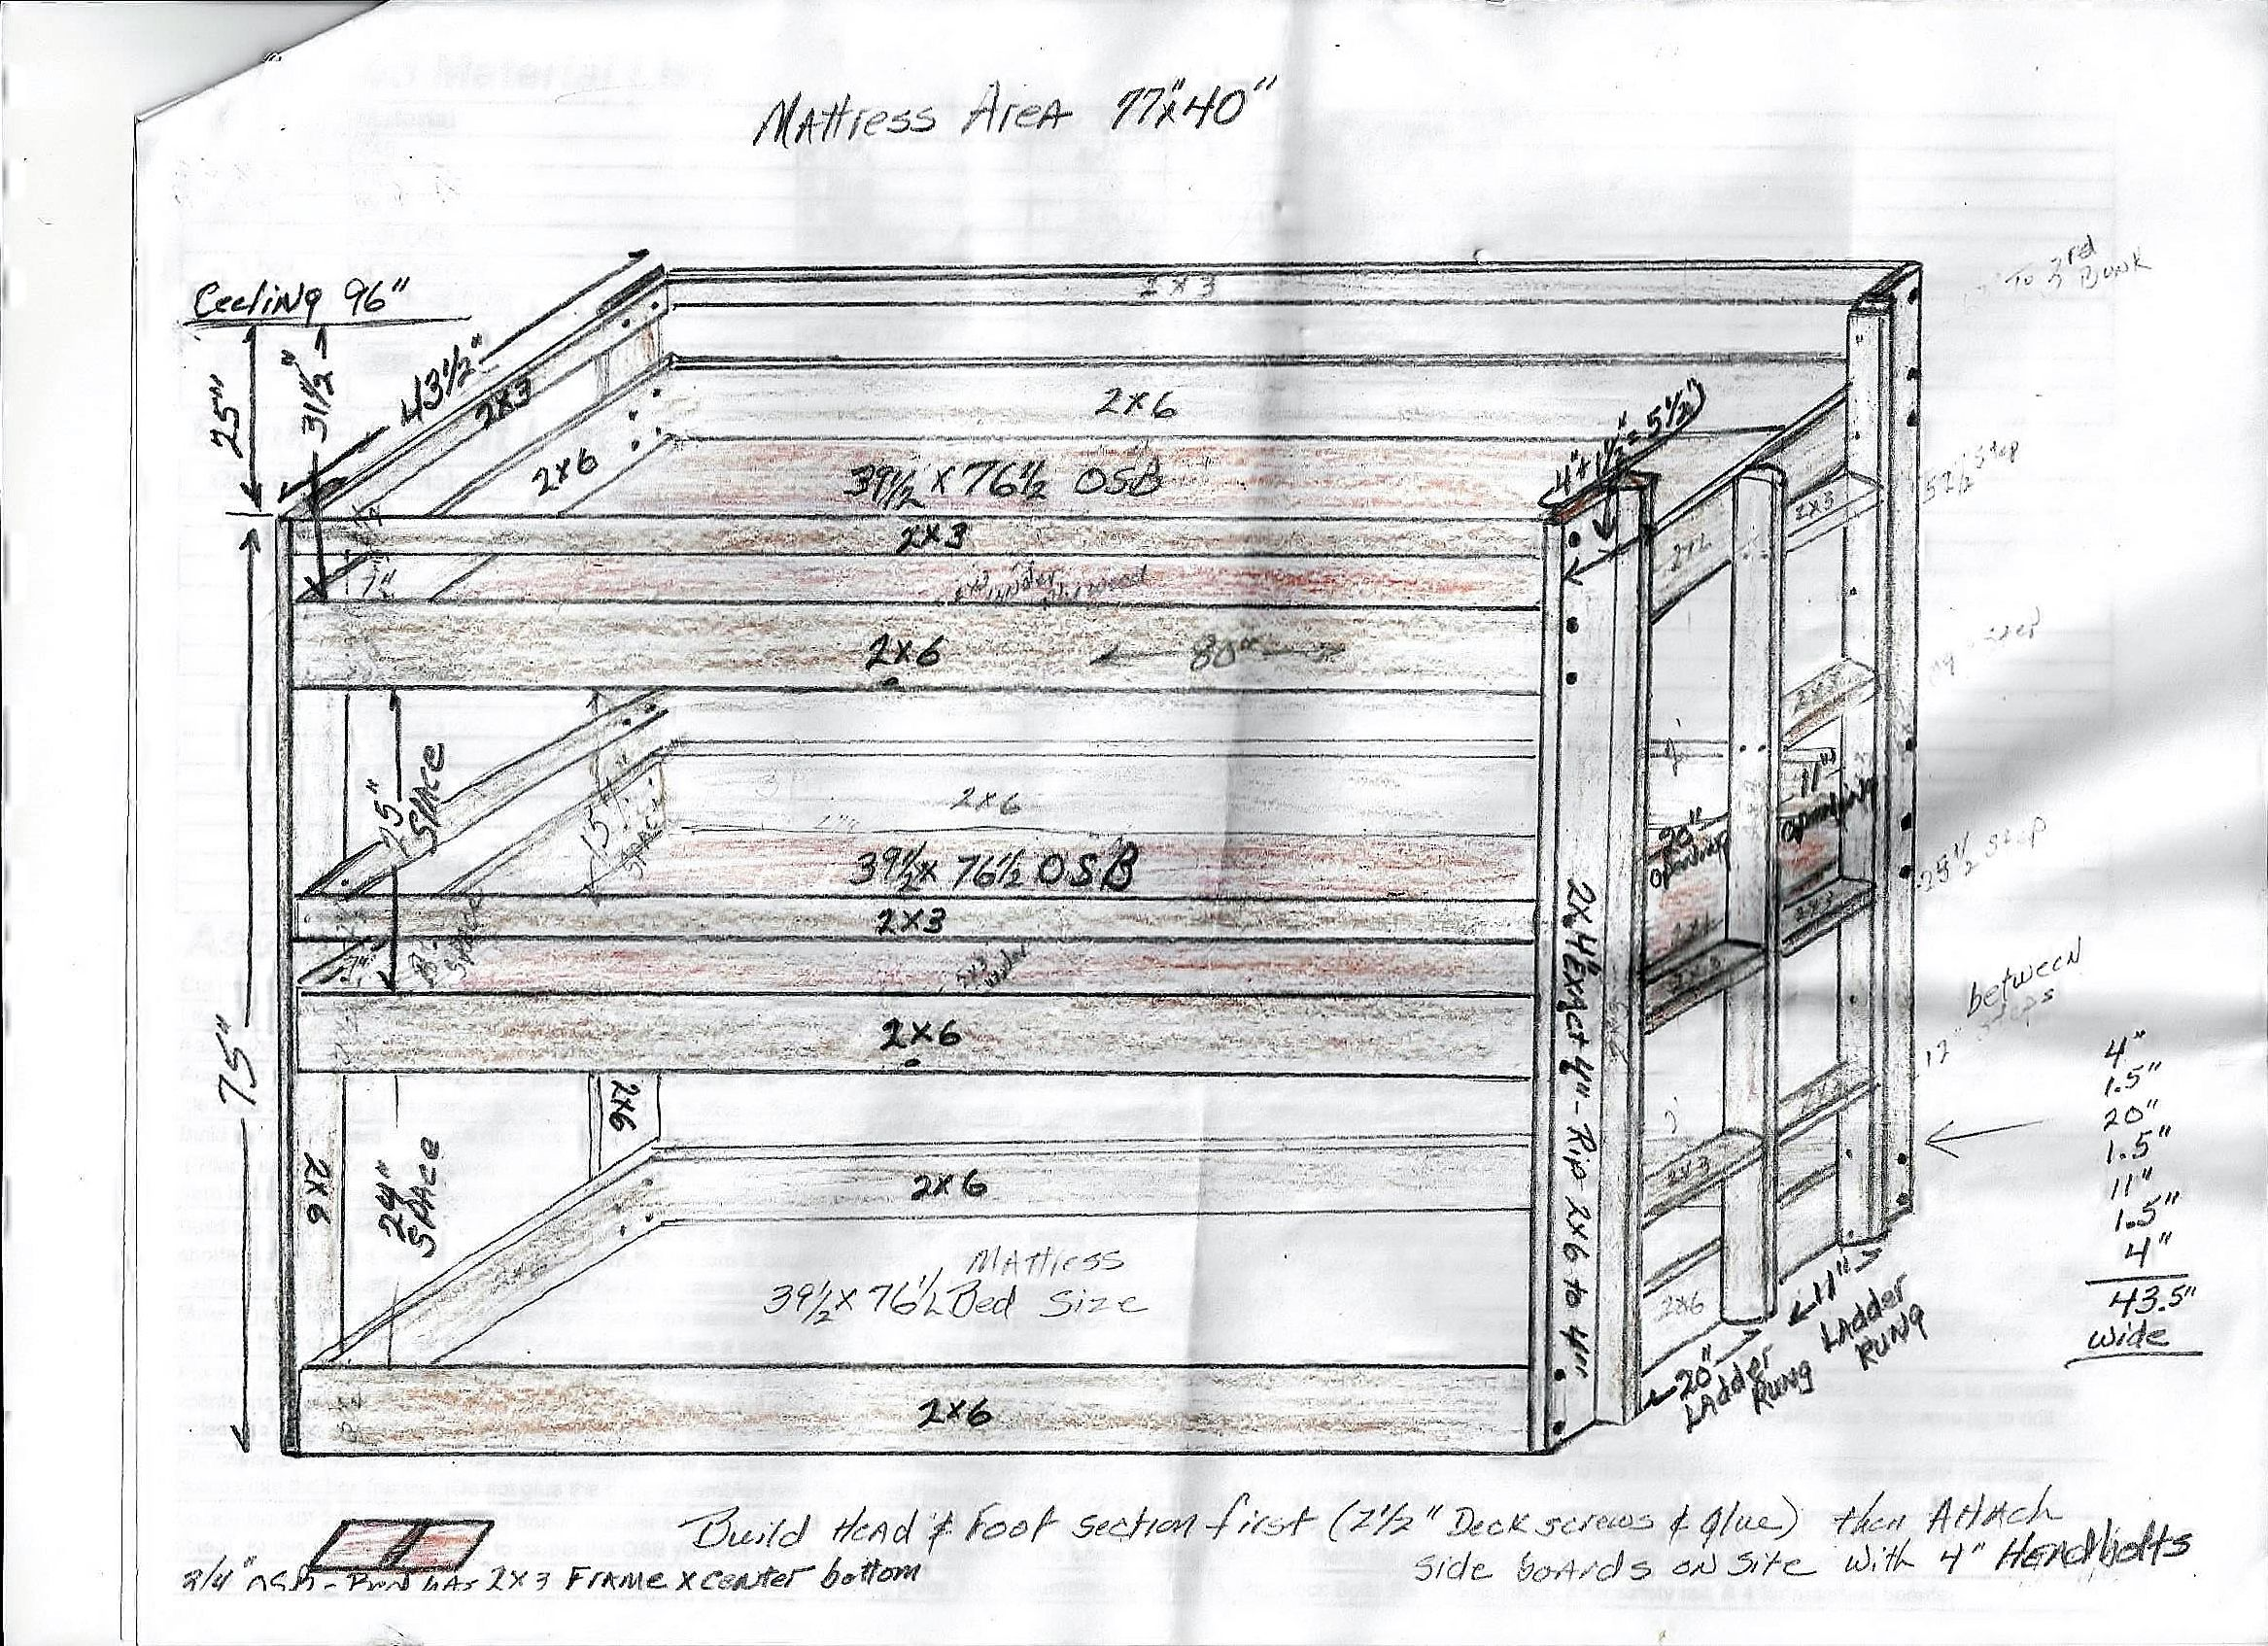 This Is A Drawing With The Dimensions For The Assembly Of The Triple Bunk Bed Bunk Beds Triple Bunk Beds Kid Beds